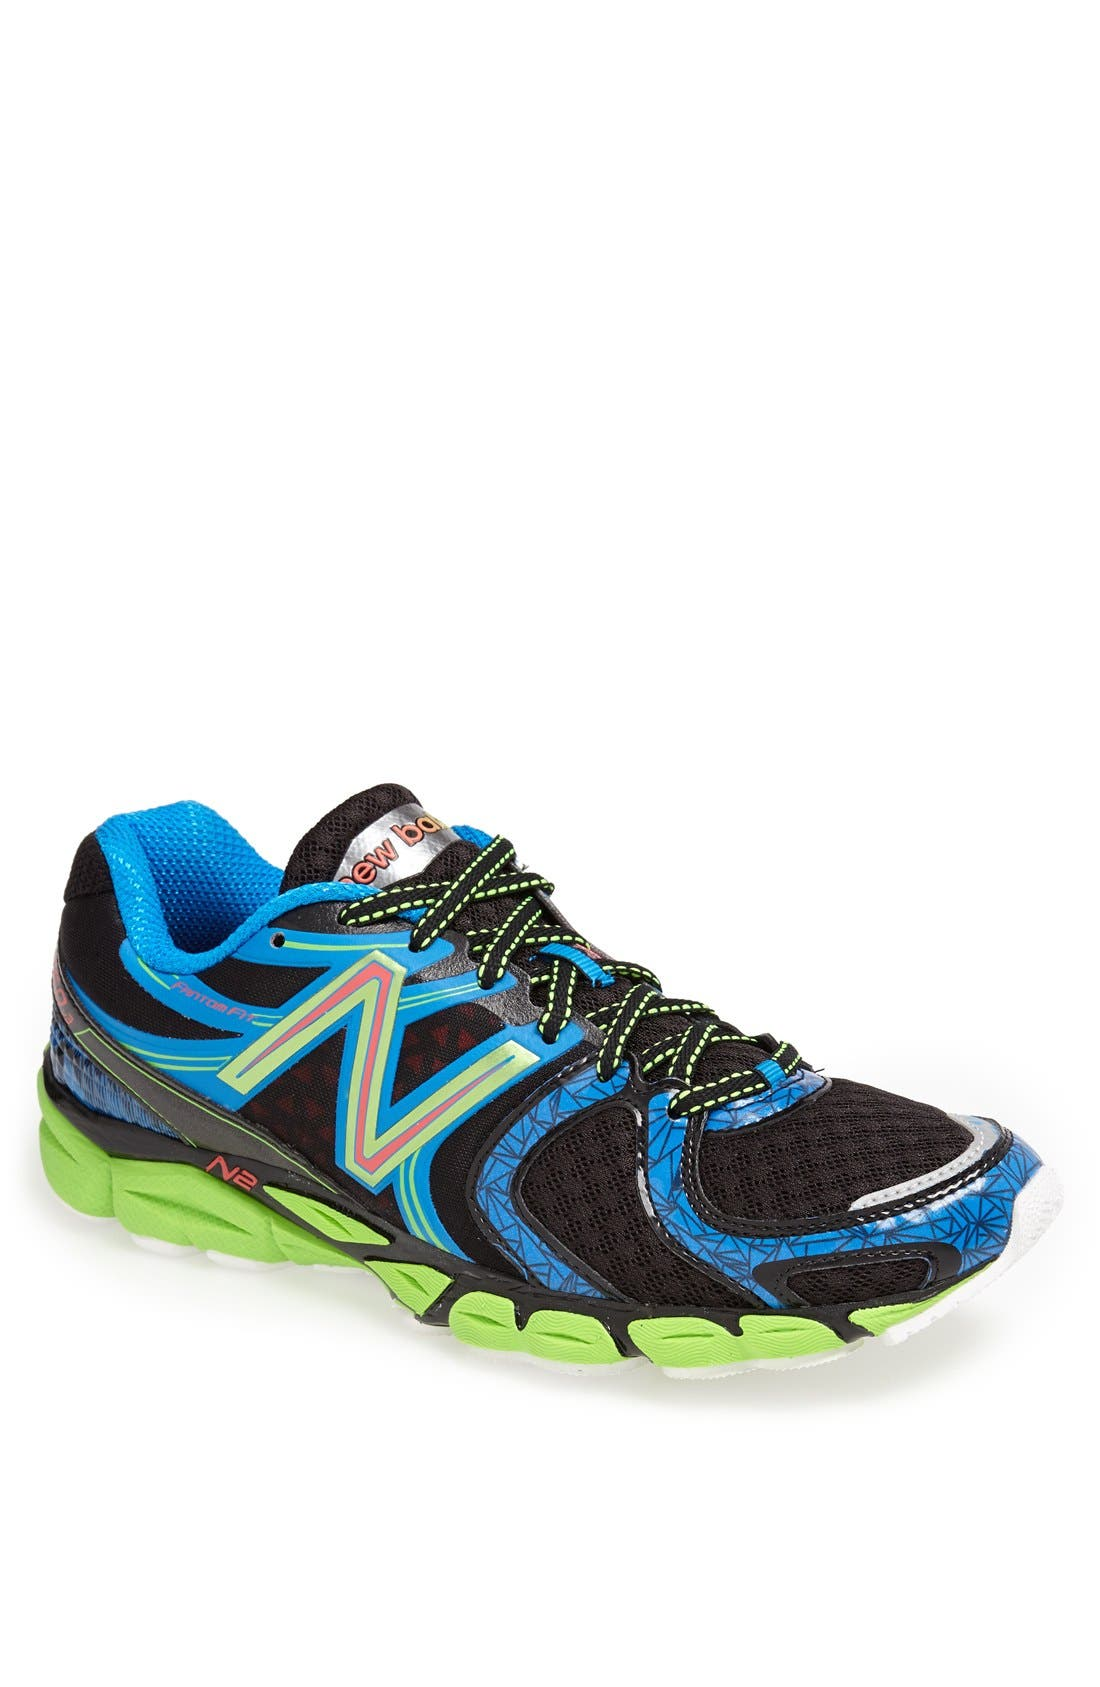 Alternate Image 1 Selected - New Balance '1260v3' Running Shoe (Men)